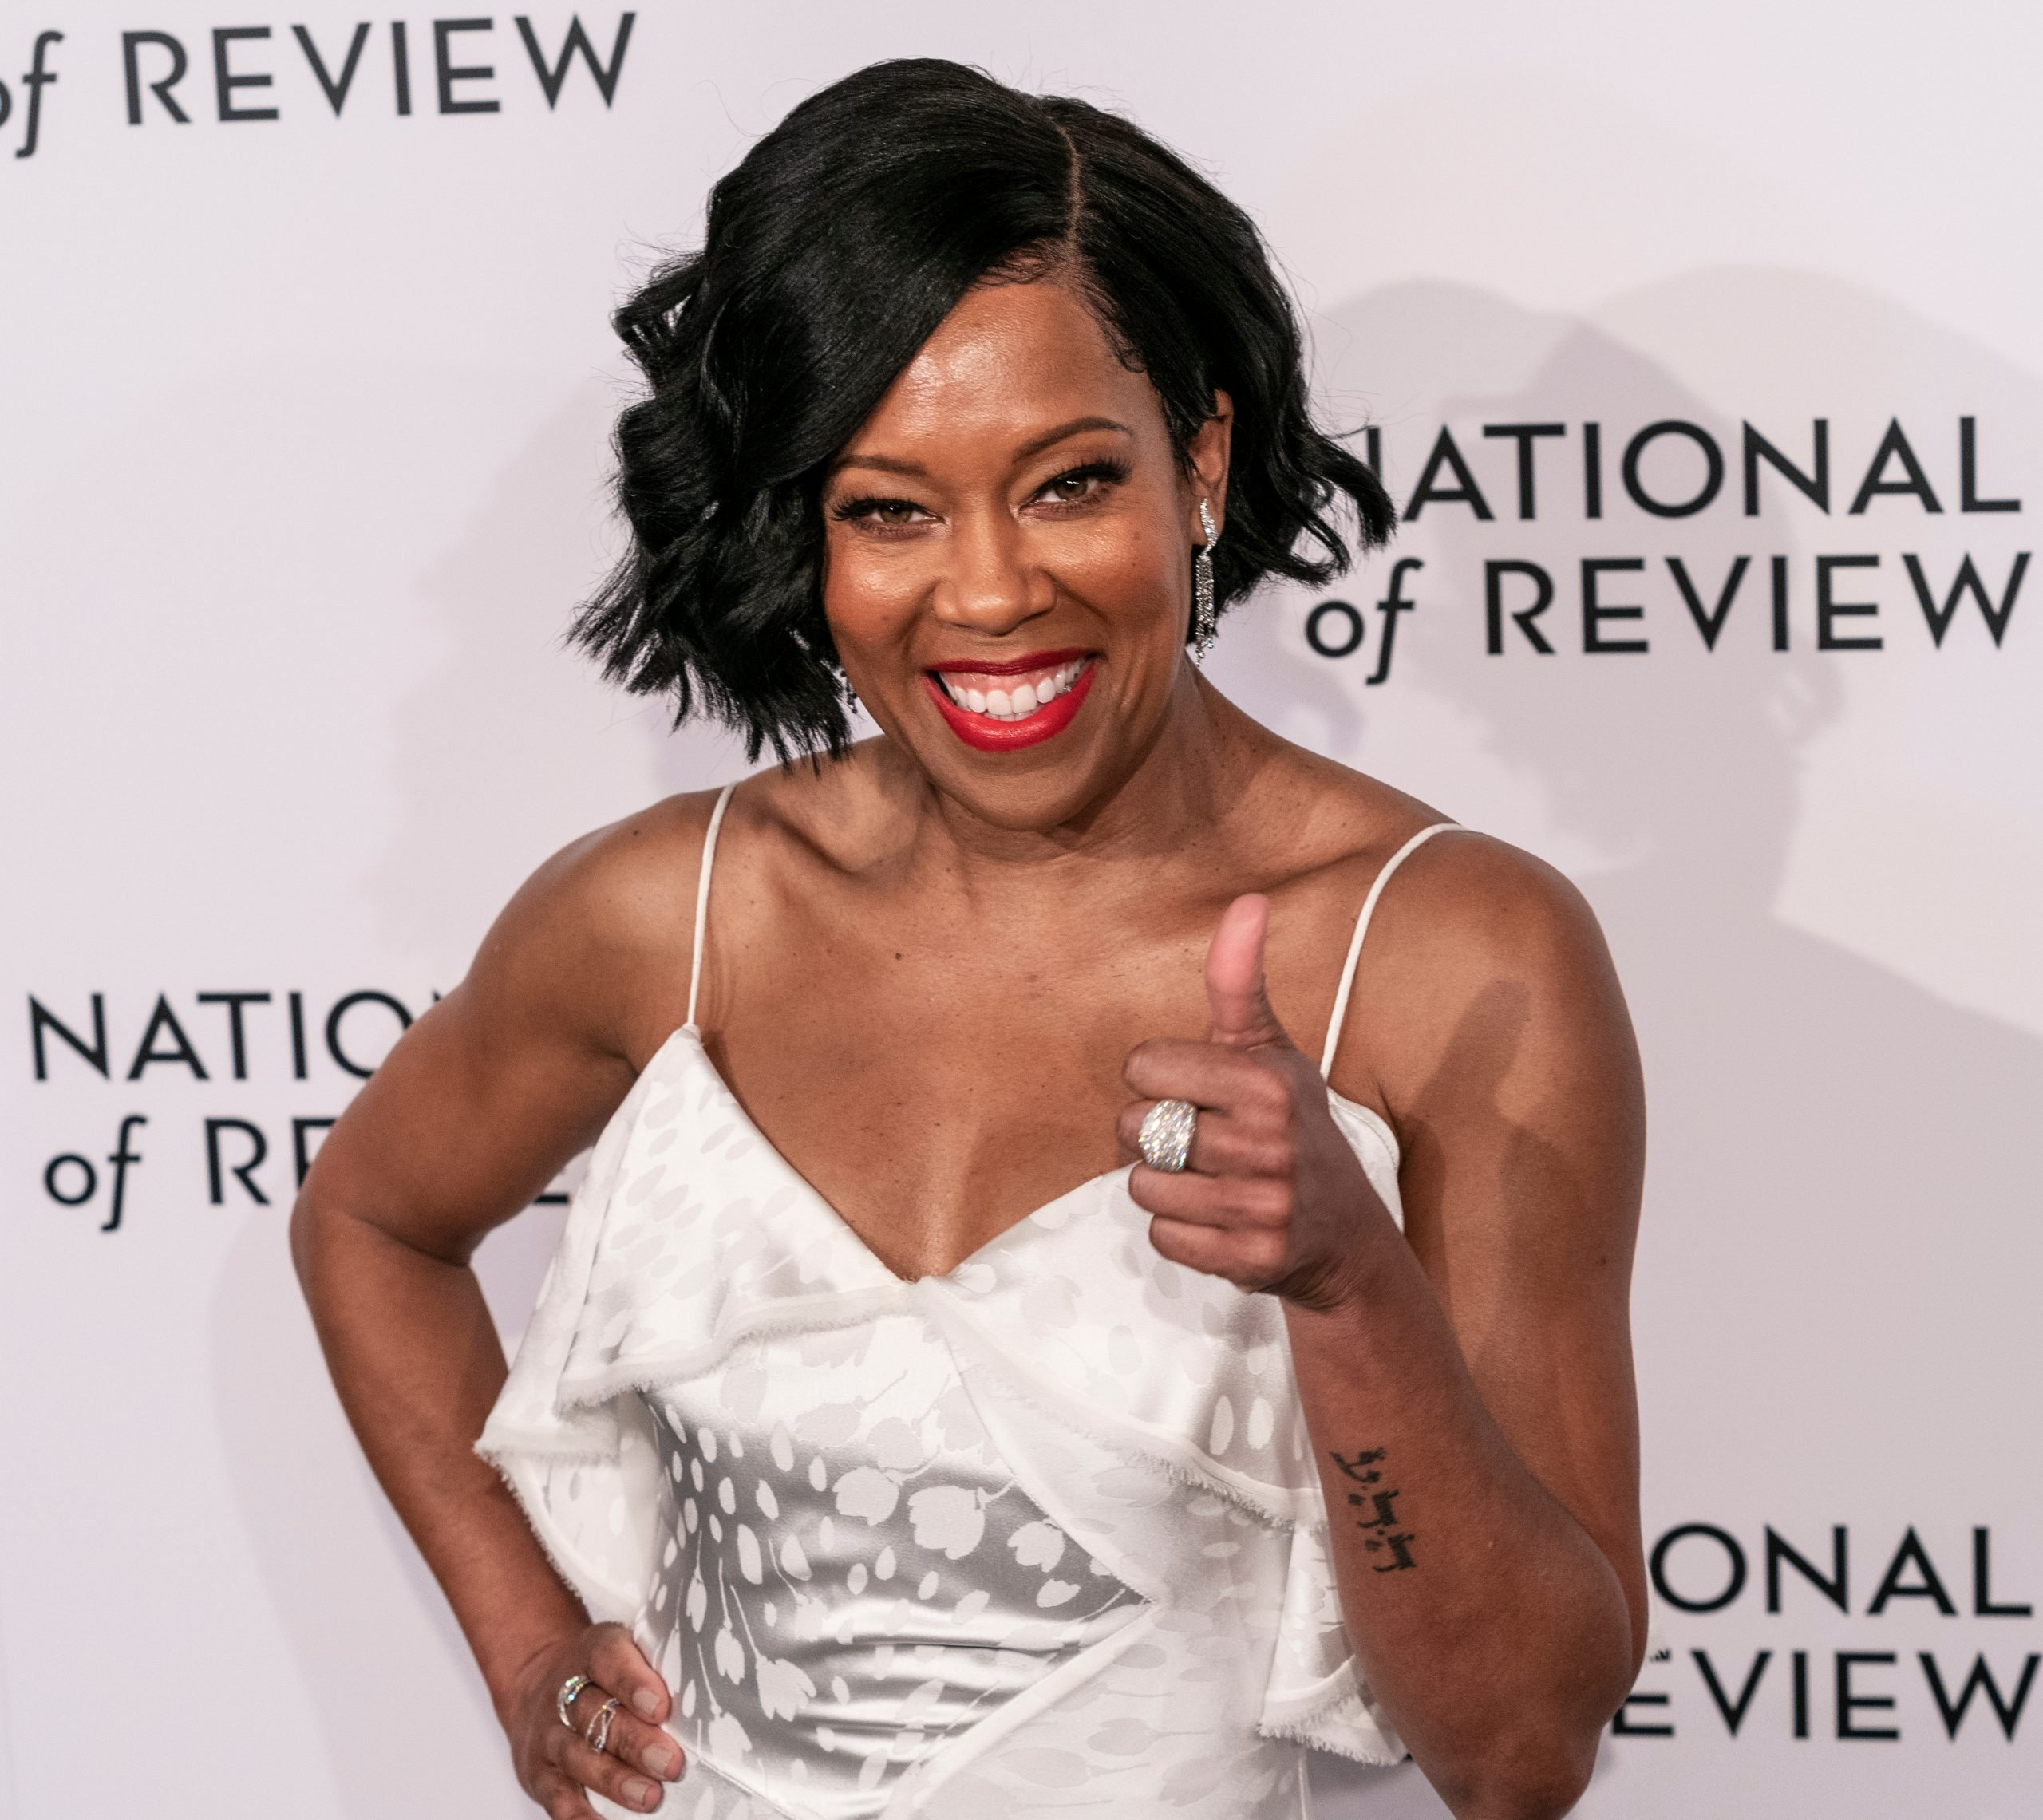 """Regina King smiles at a red carpet event and makes a """"thumbs up"""" gesture. She has black hair that sits in an elegant wavy bob and wears a white dress with thin straps."""